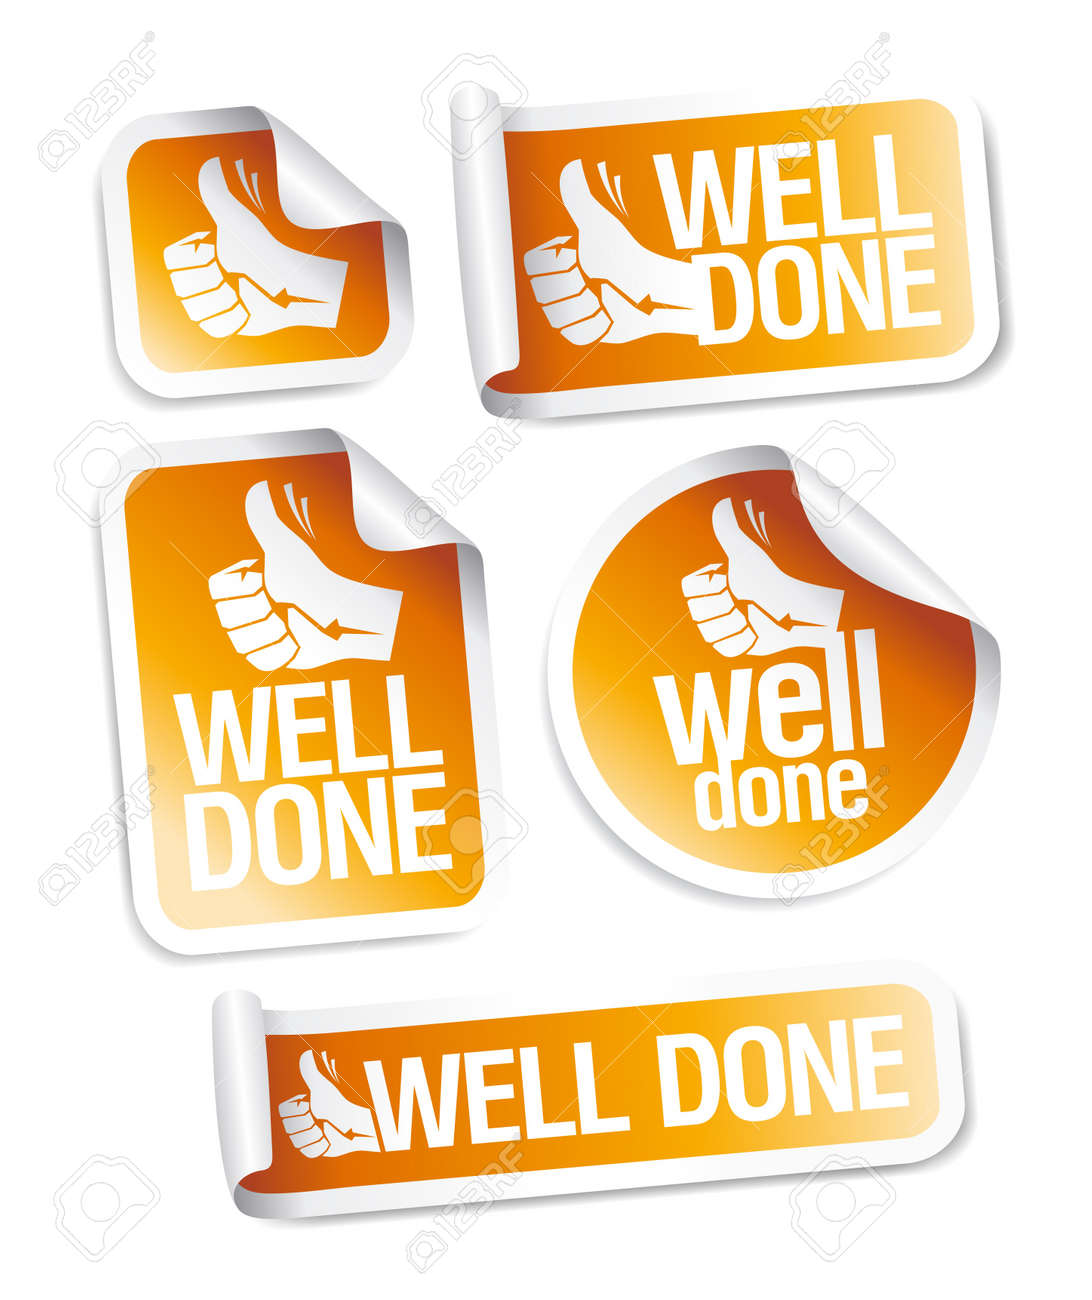 Well done stickers with hand thumbs up symbol. Stock Vector - 17932698